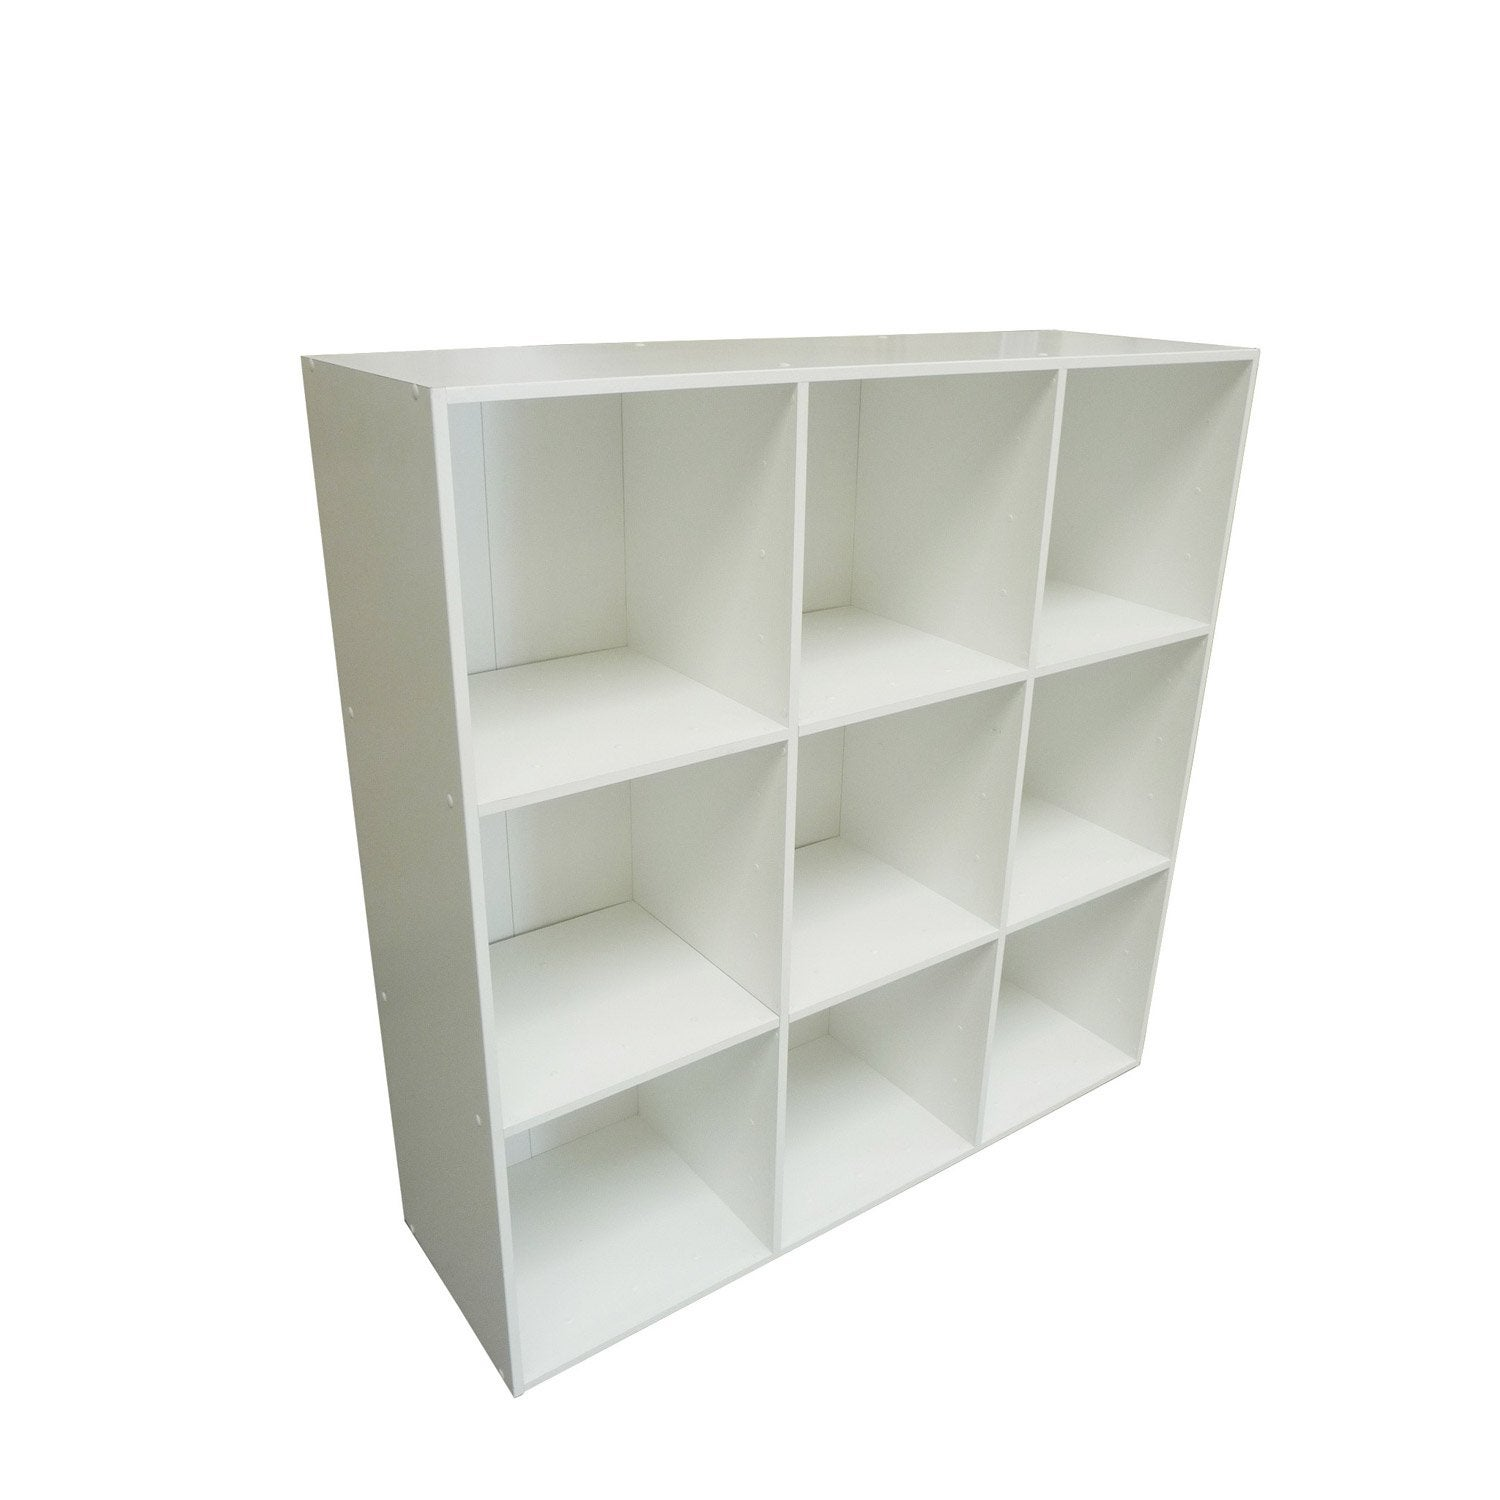 Etag re 9 cases multikaz blanche l103 2 x h103 2 cm leroy merlin - Etagere garage leroy merlin ...